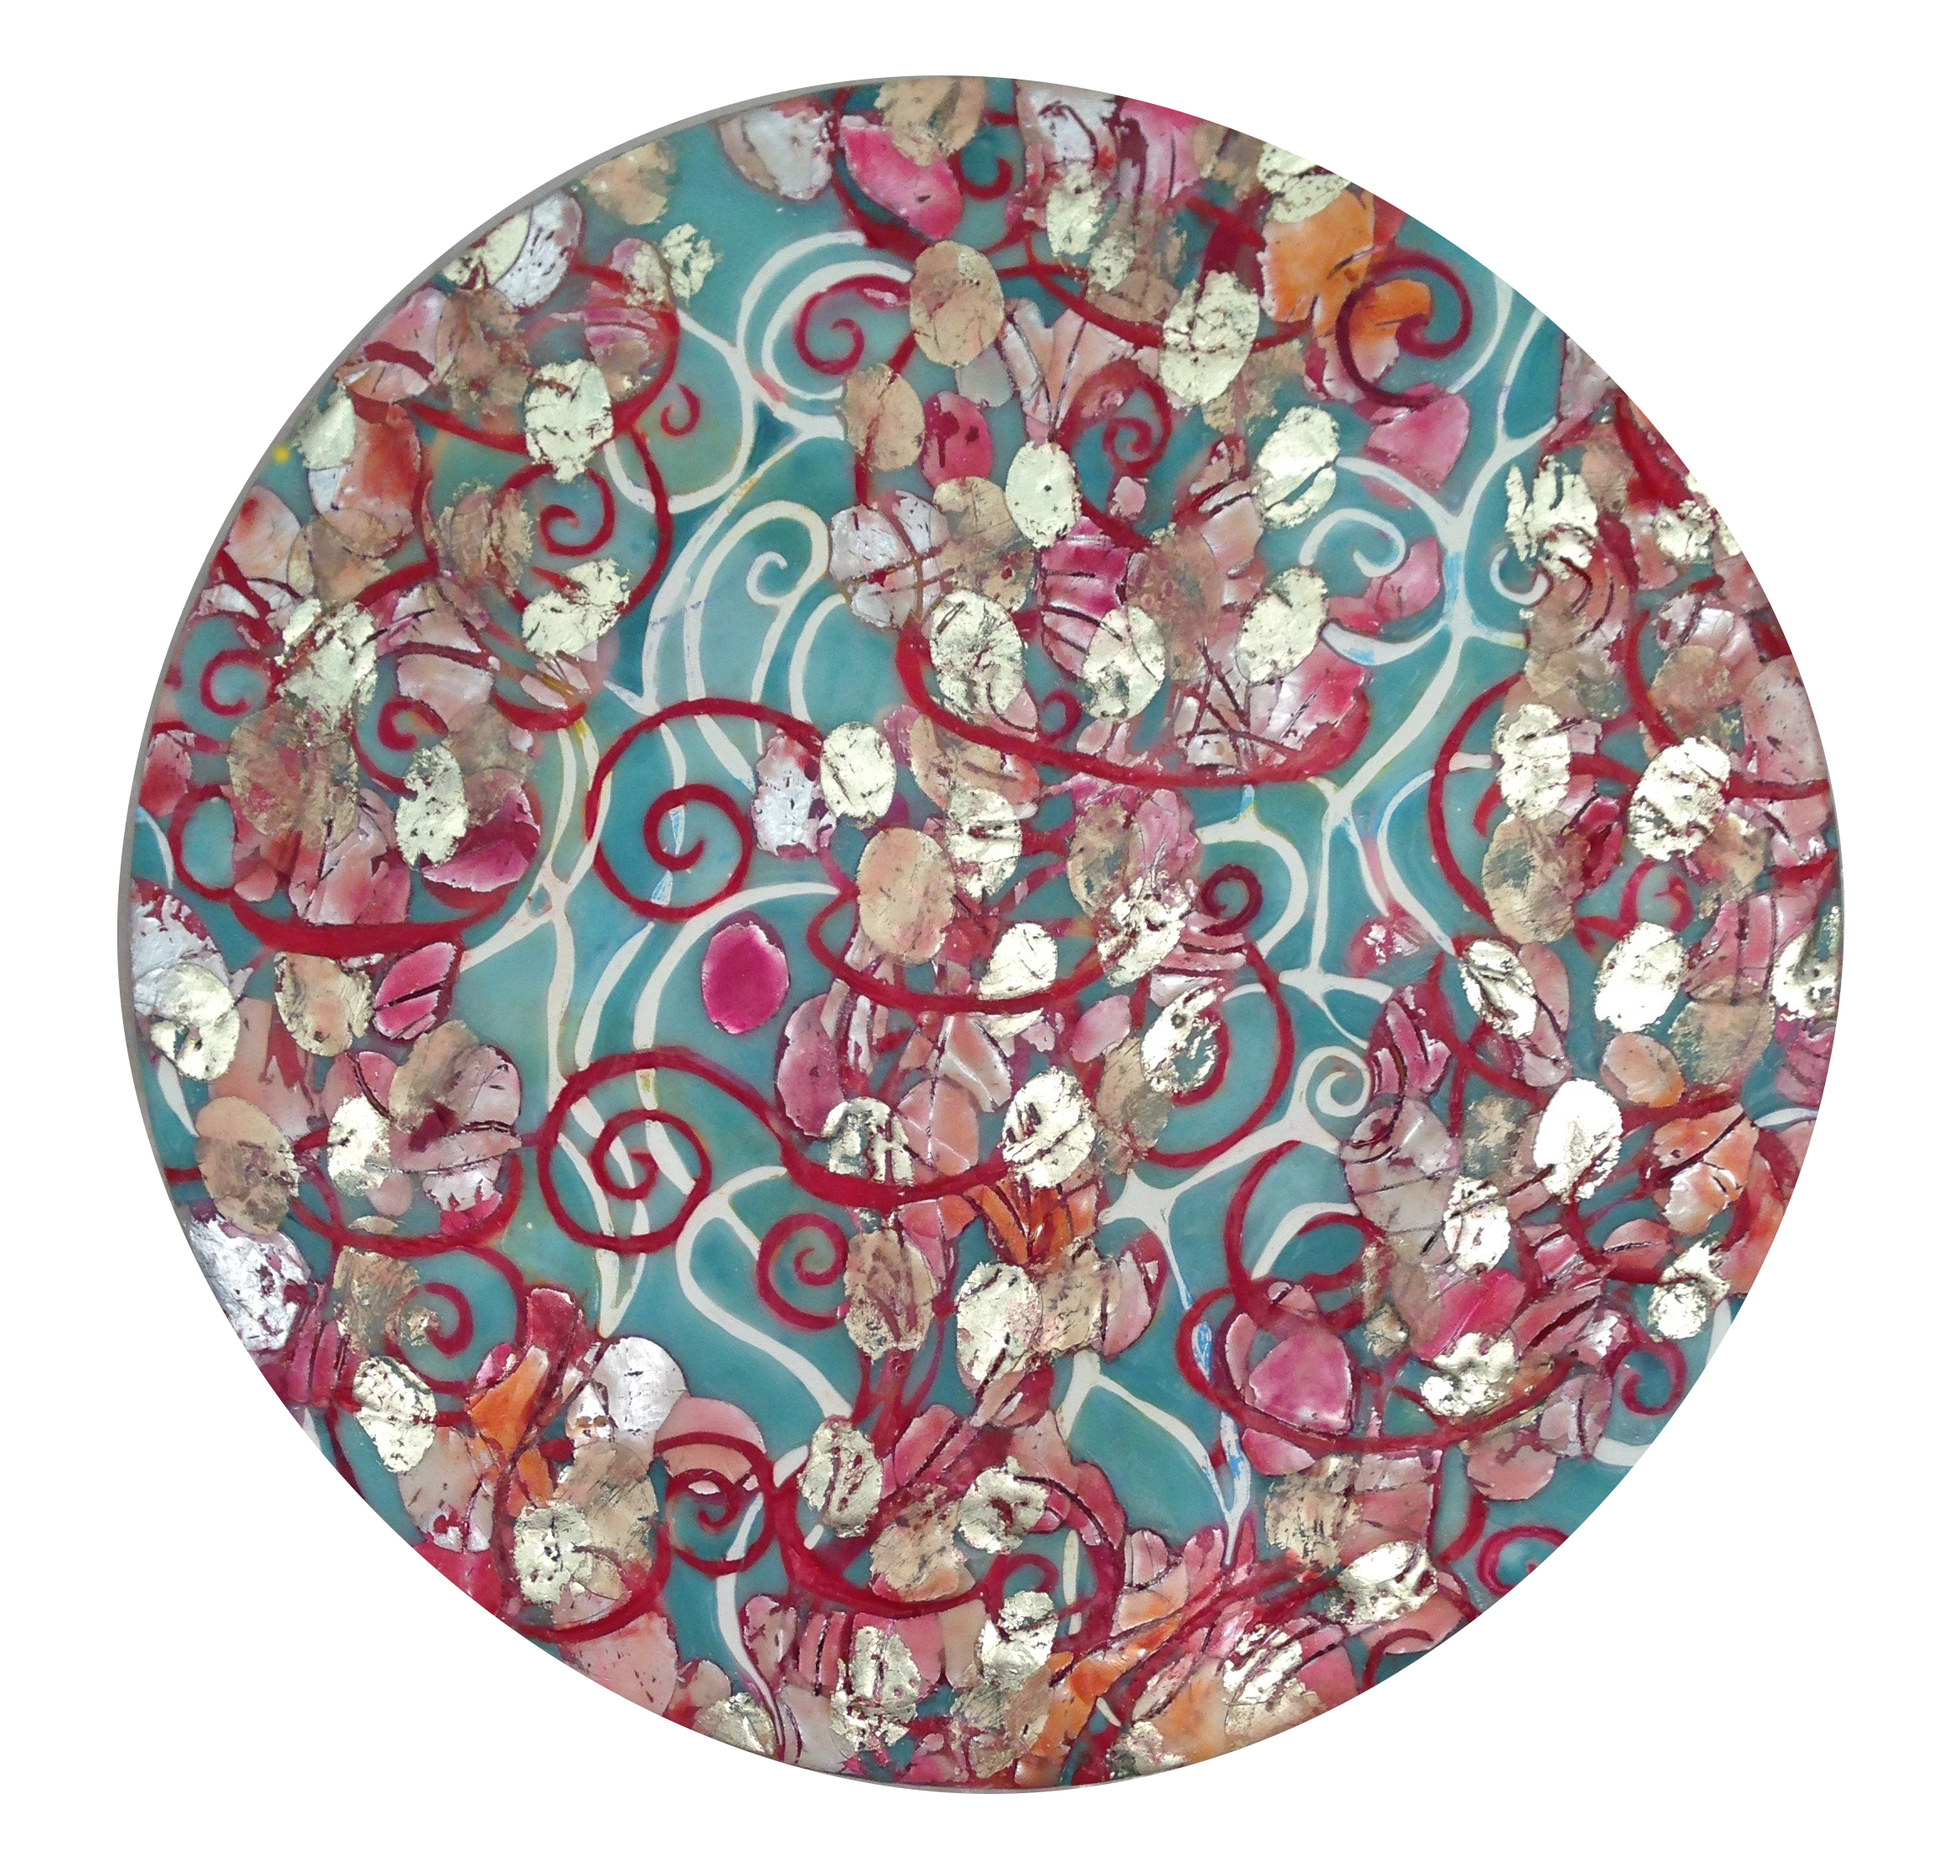 """Rose Petal Kiss & Butterflies,Passion Fire   series by Maggie Simonelli2015 Encaustic, 16 kt pale gold leaf, cosmetics,Lipstick kiss:CHANEL Rouge Coco 31  Cambon  Lipstick, sandalwood oil, pigments, and aluminum leaf on birch panel  20"""" Diameter"""